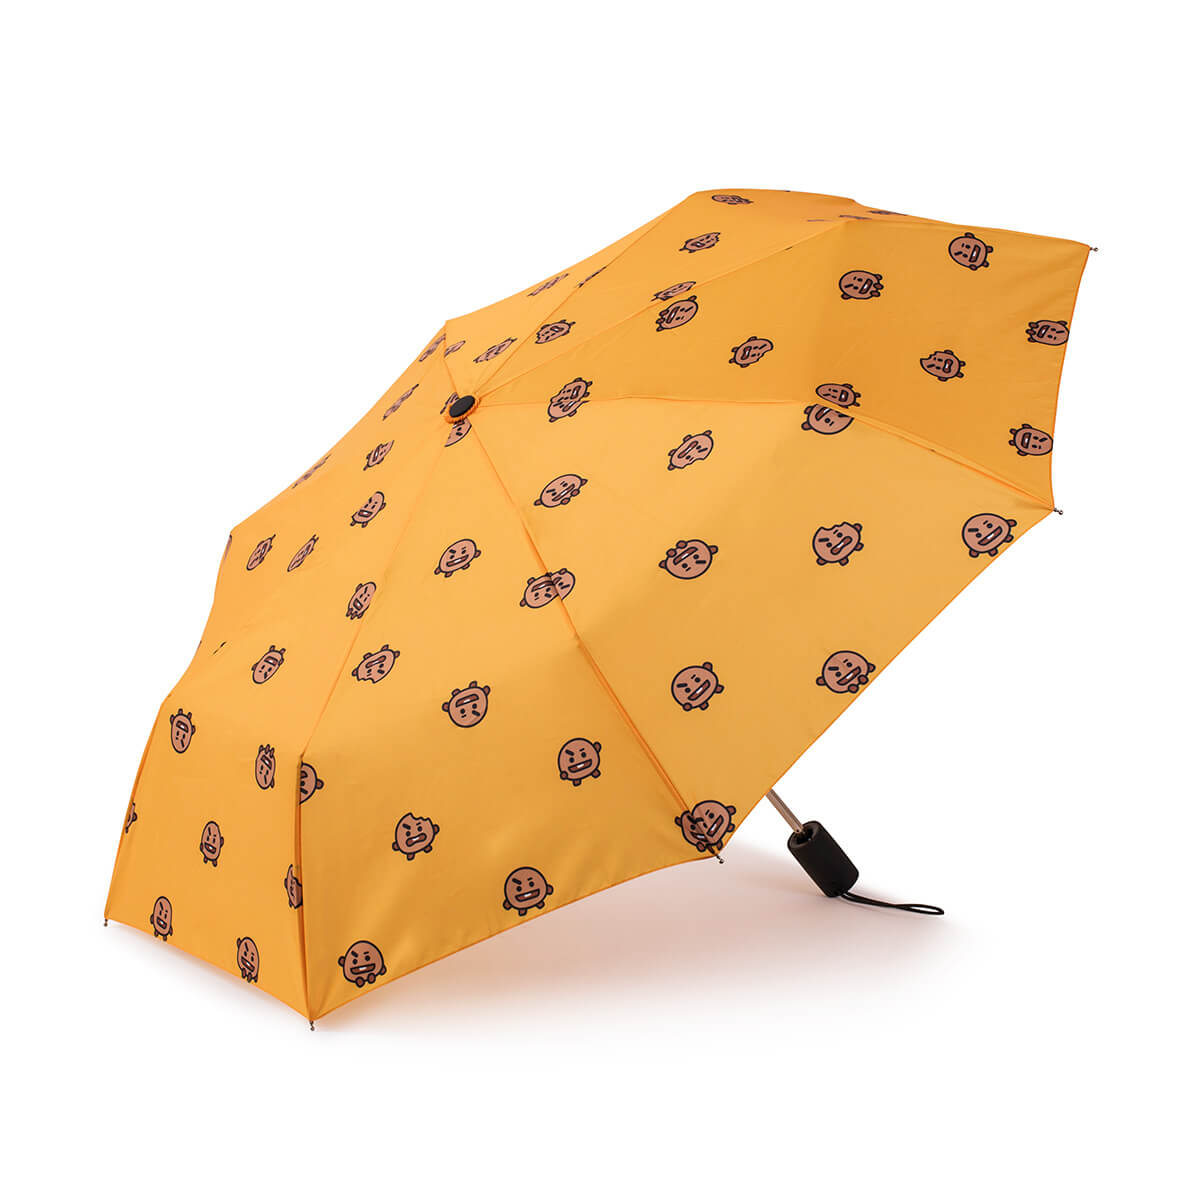 BT21 SHOOKY Auto Umbrella